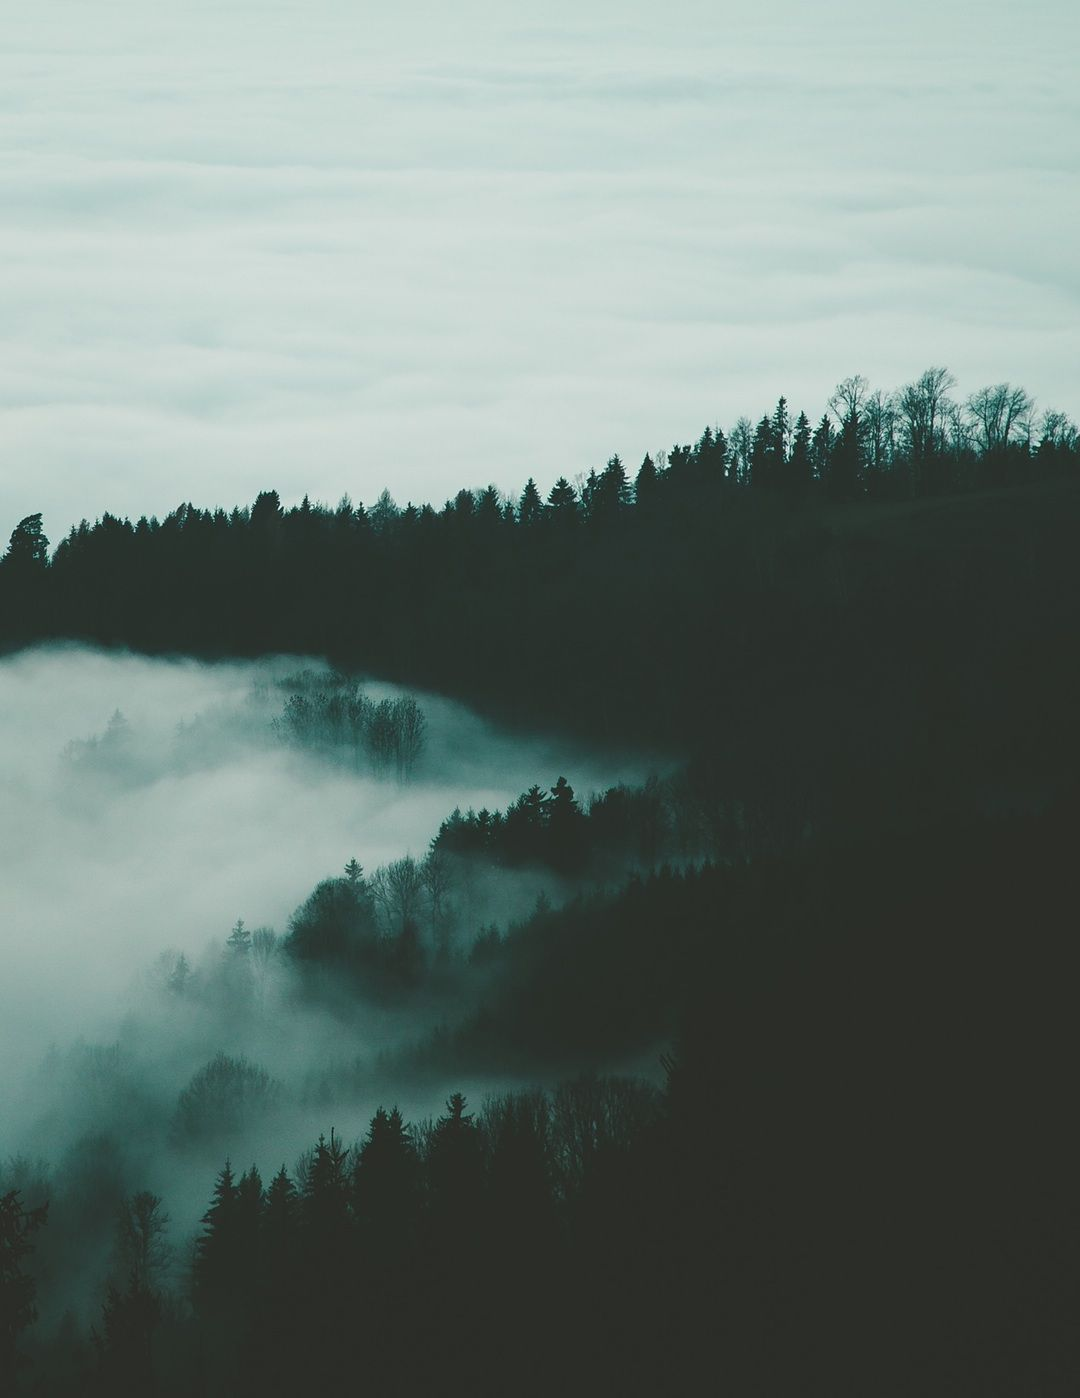 Do Whatever You Want High Resolution Photo From Daniel Kainz On Unsplash Forest Pictures Slytherin Aesthetic Landscape Photography Tips